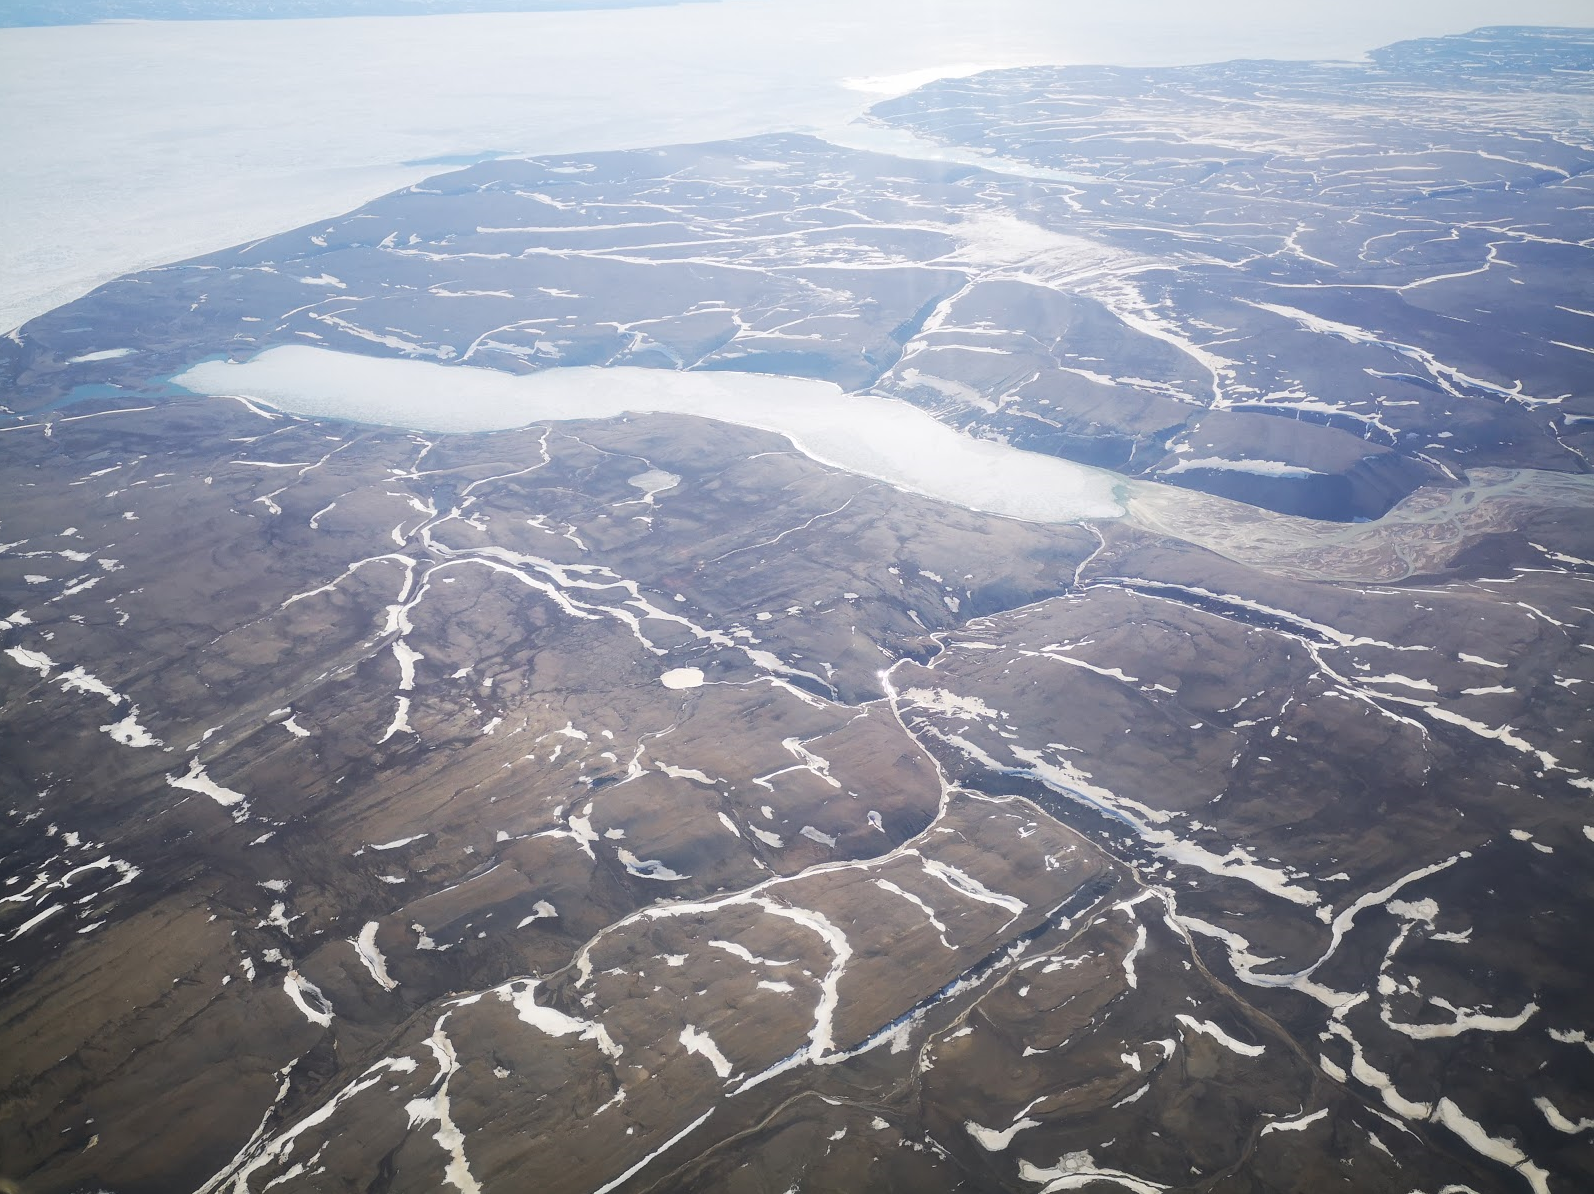 Networks of subglacially-carved channels on Axel Heiberg Island. Image credit: Anna Grau Galofre.